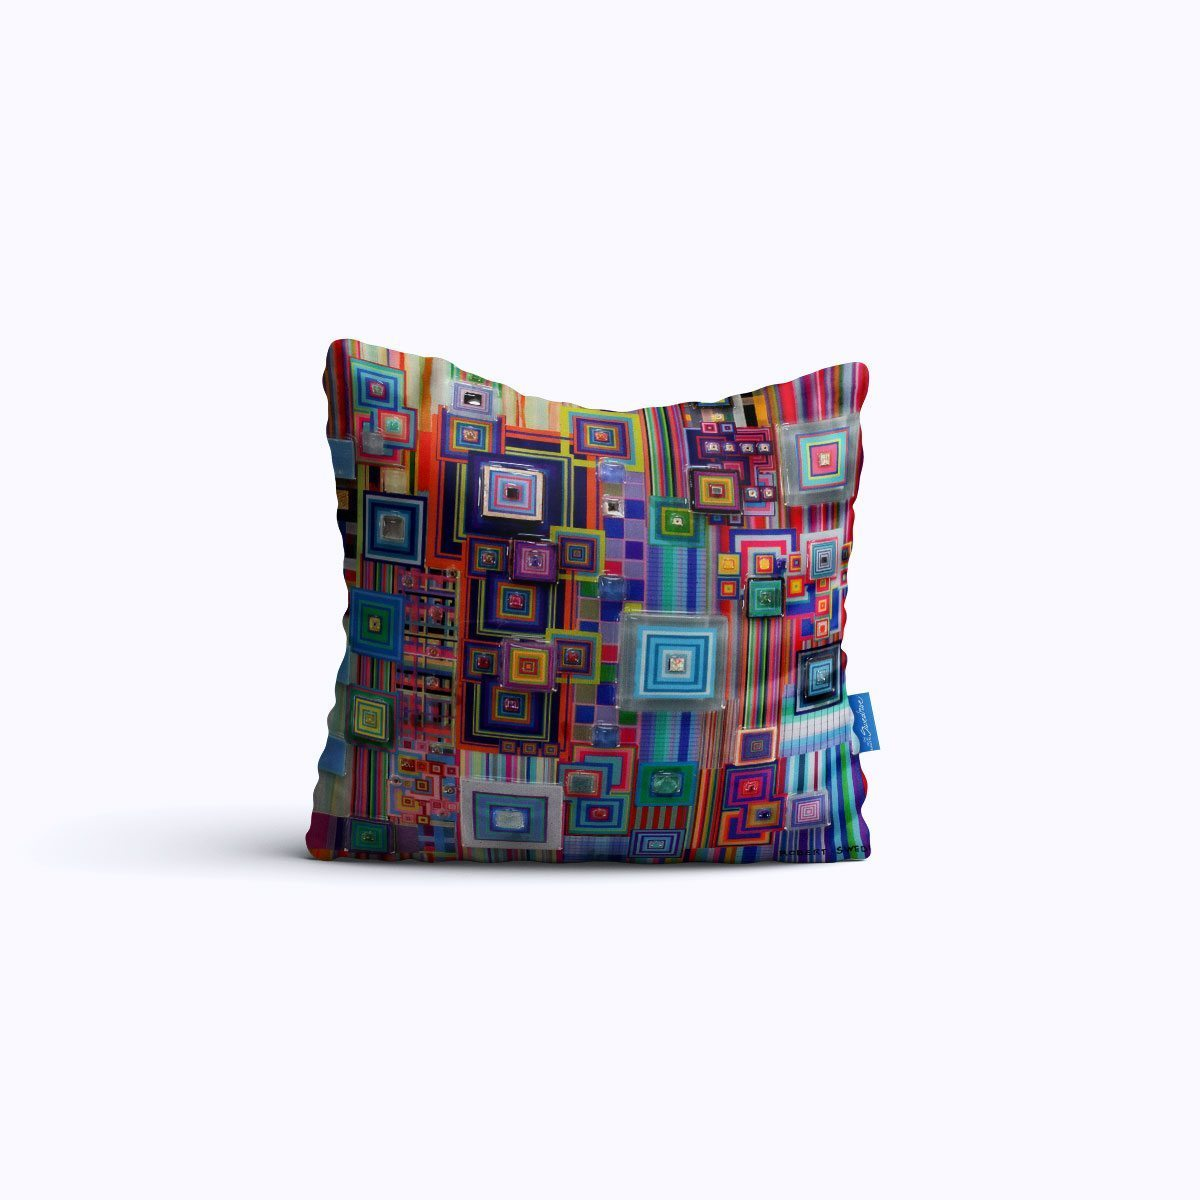 RMS1284-Cyberology - Throw Pillow - Swedroe Licensing